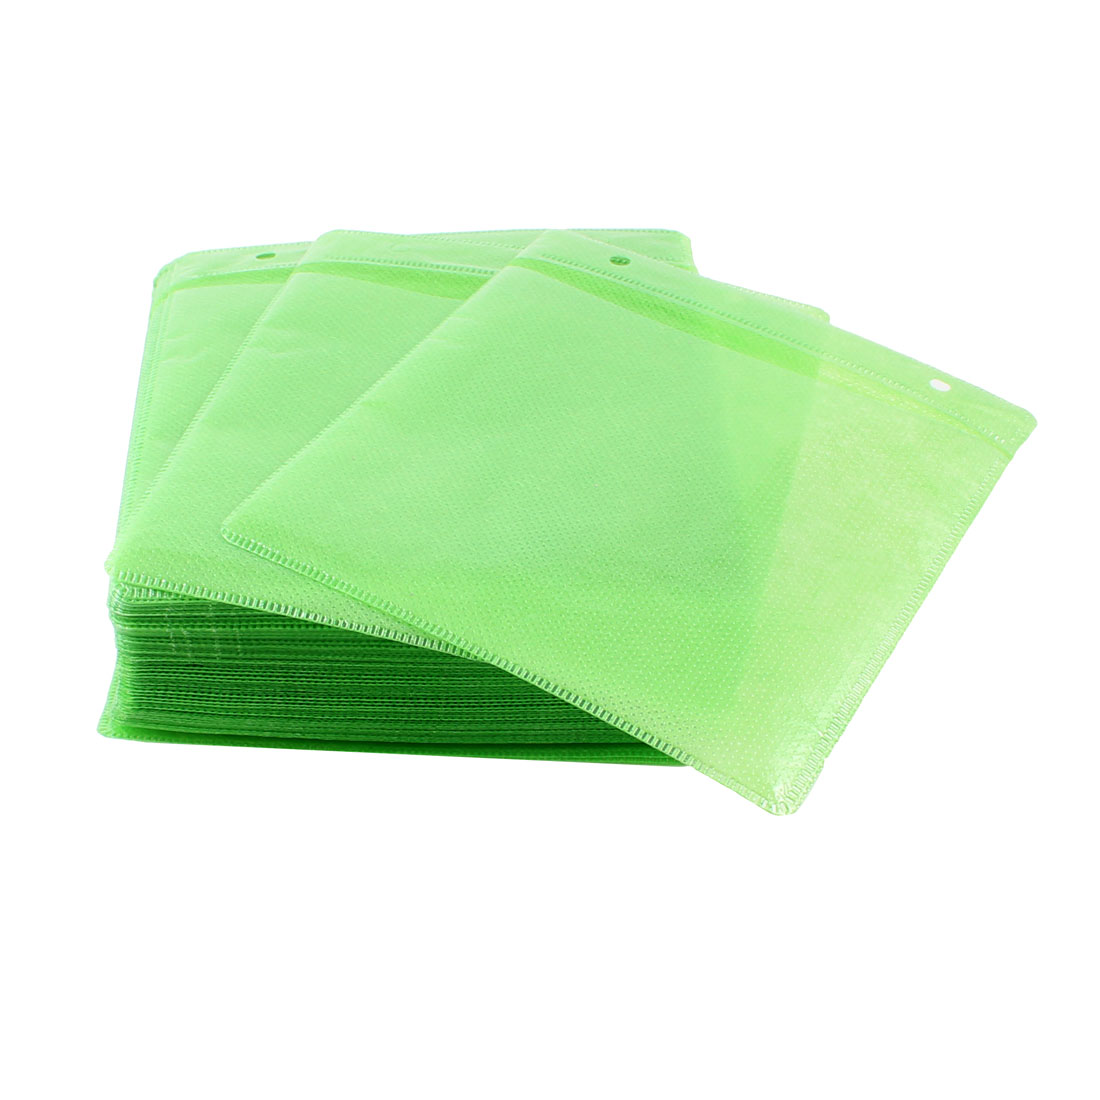 14.5cm x 12.6cm Green Non-woven Fabric CD Storage Holder Bags 100 Pcs